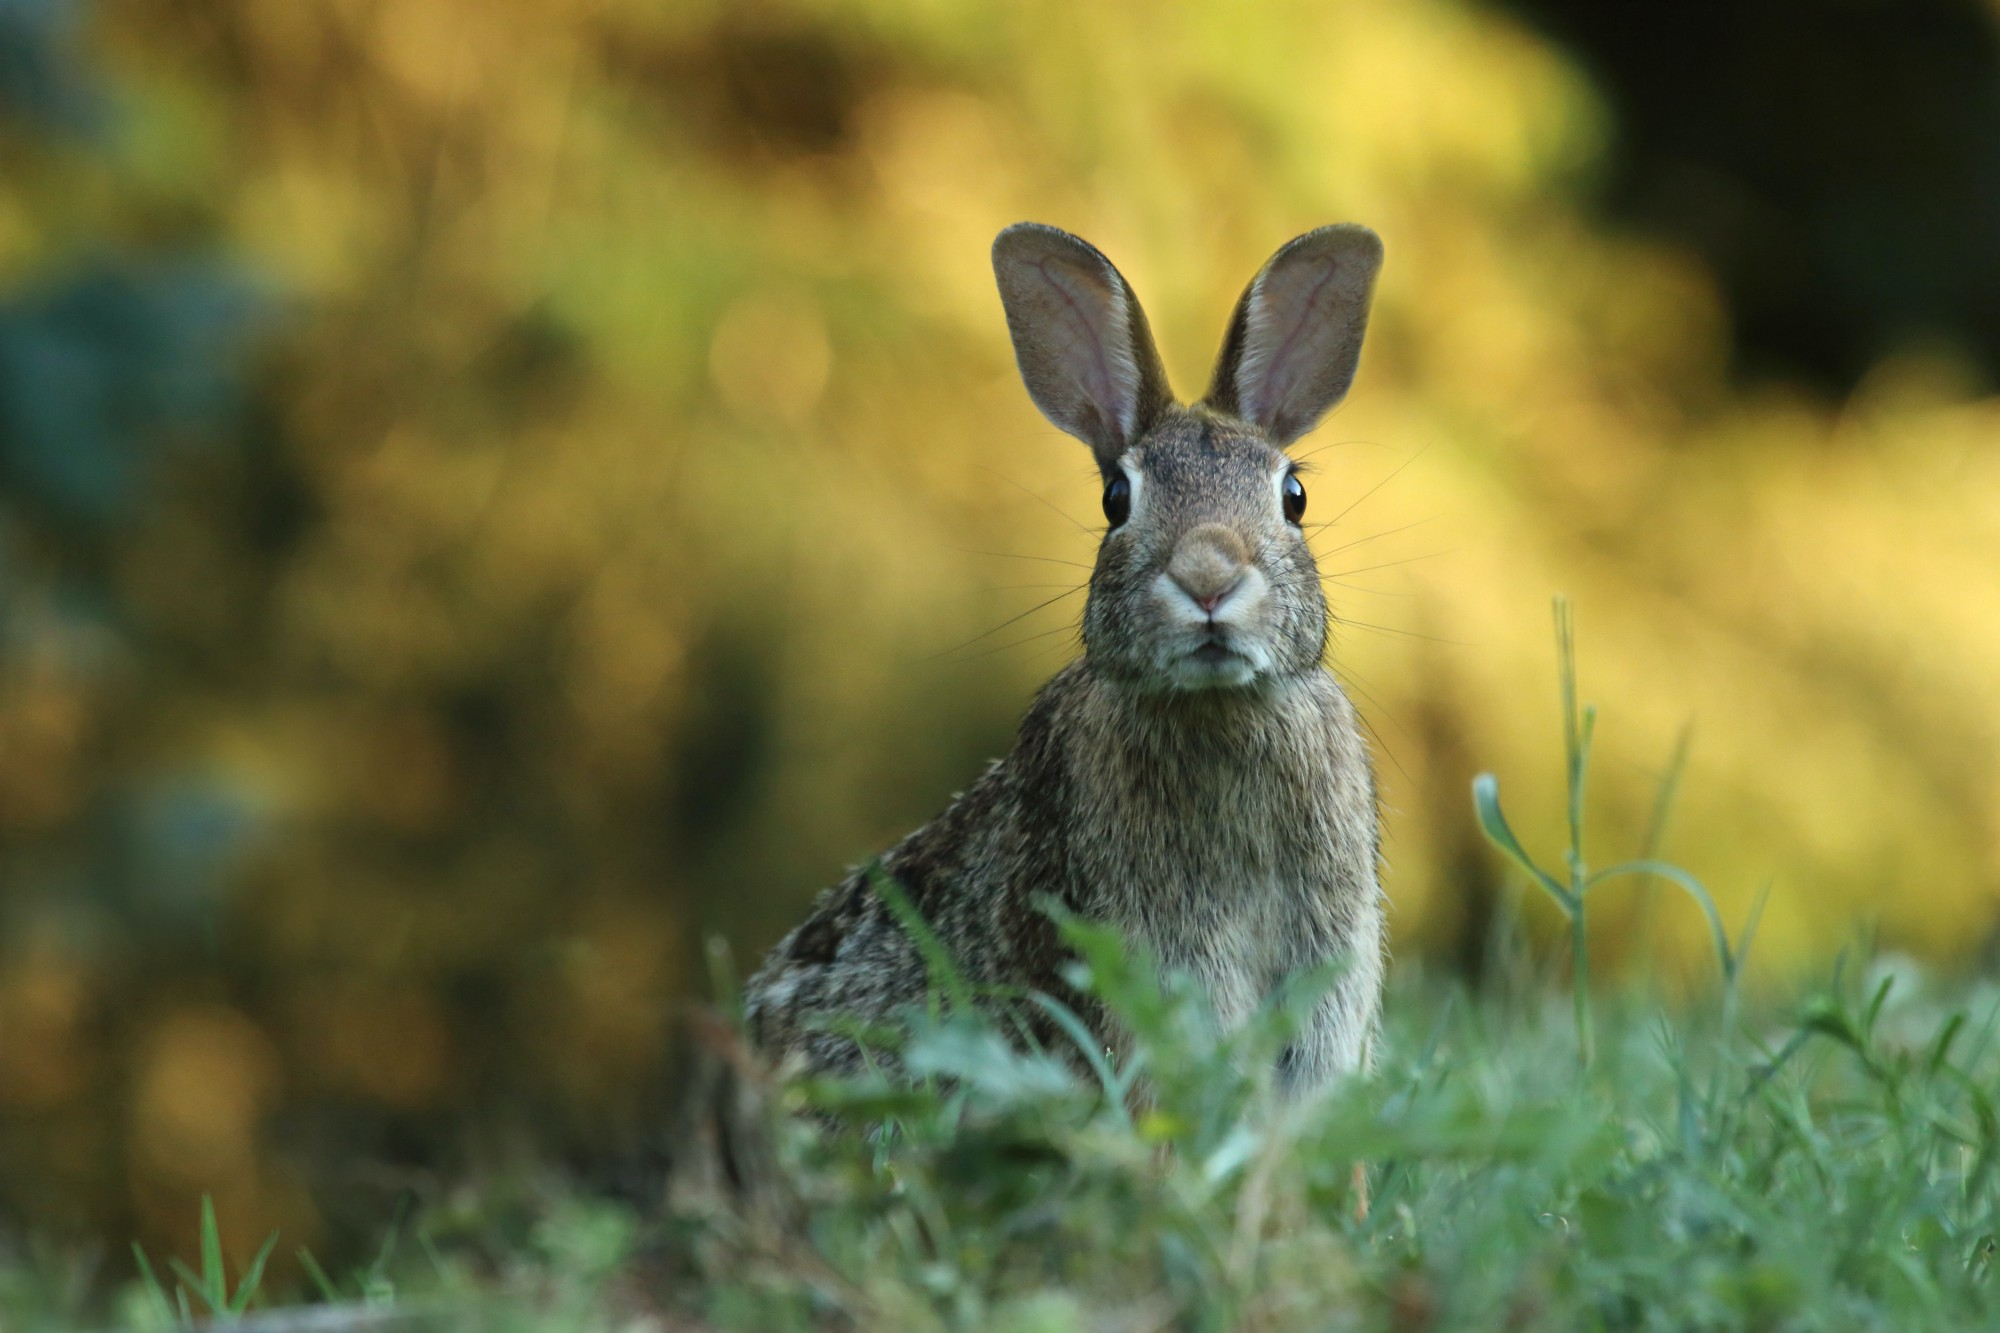 An alert rabbit in a grassy field